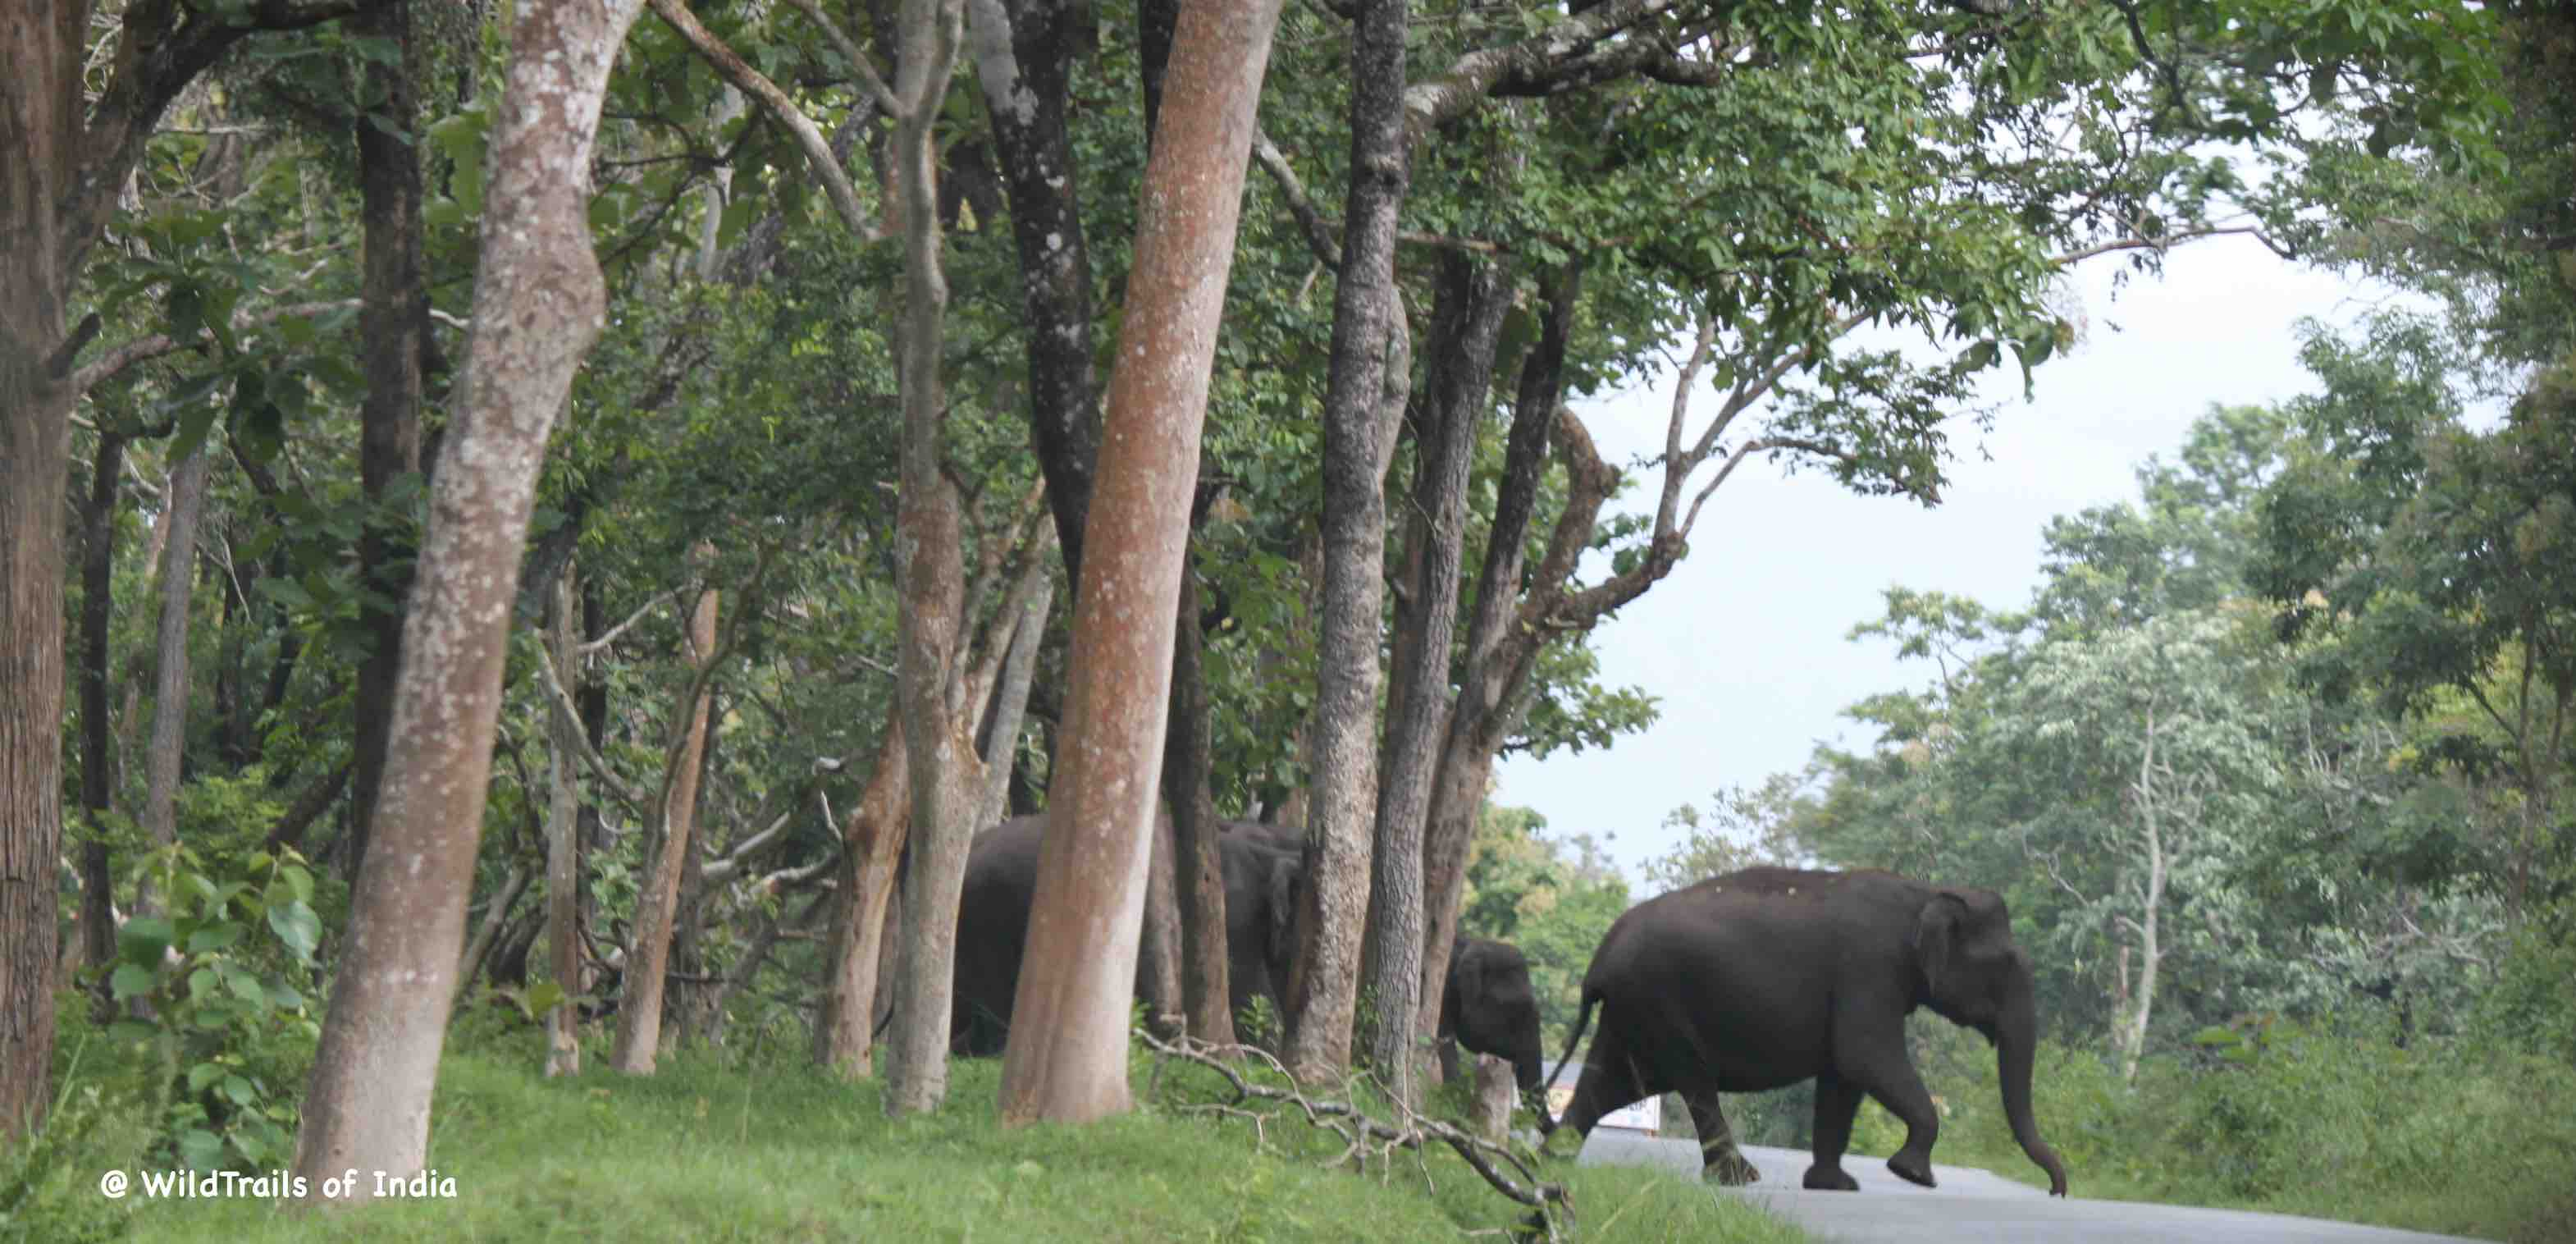 Pushpagiri Sanctuary Wildlife[The WildTrails of India app is the best way to get all the details about Indian wildlife sanctuaries (best travel times, safari details, animal sightings, forest accommodations pairing, wildlife related activities, prices, etc). Learn more about WildTrails of India here.]